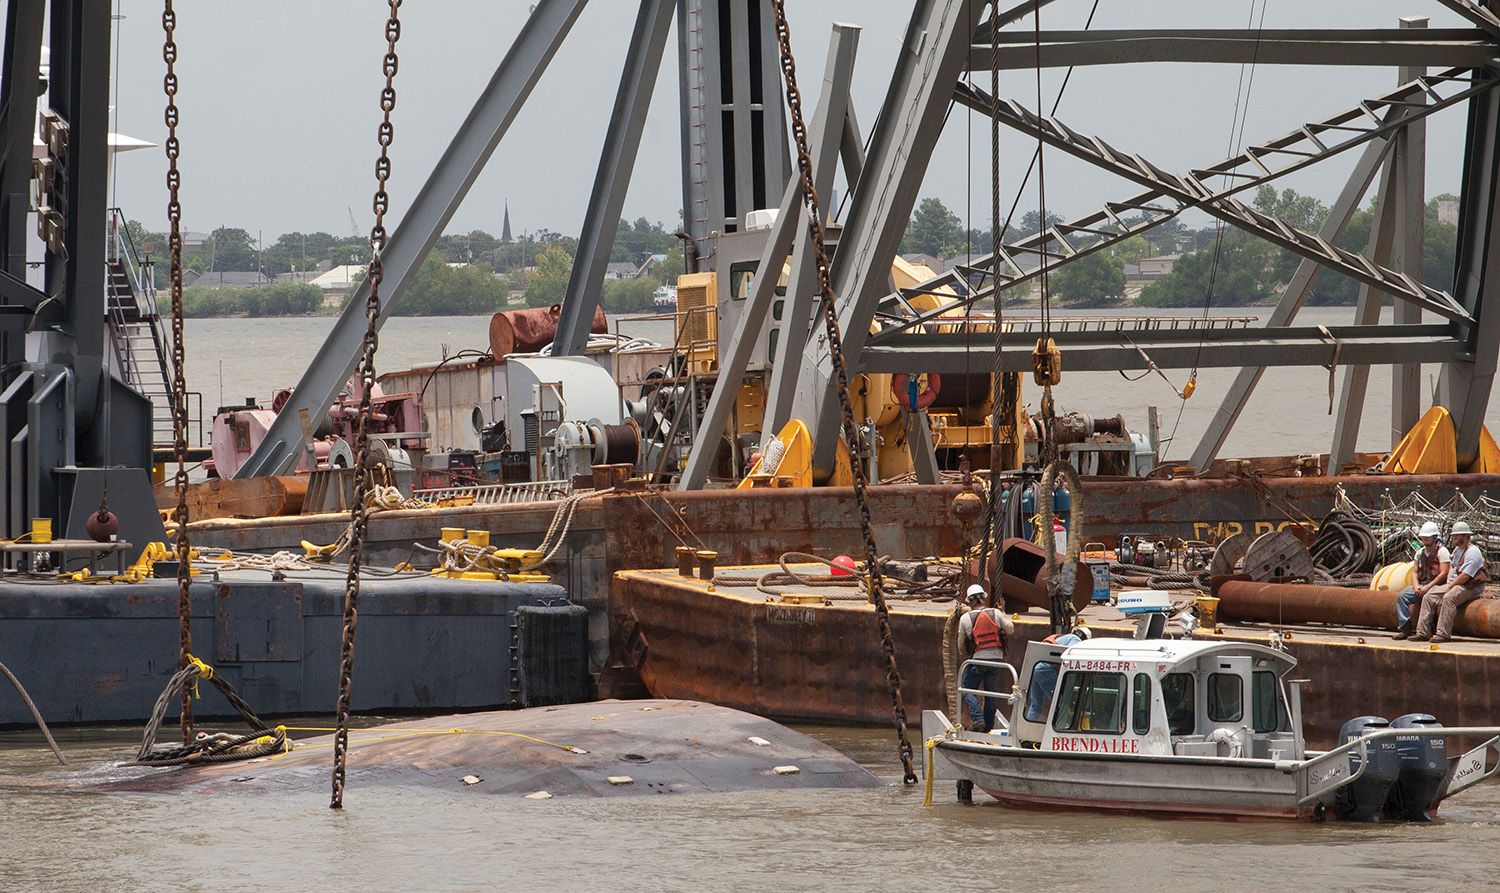 Towboat That Sank In March In New Orleans Raised